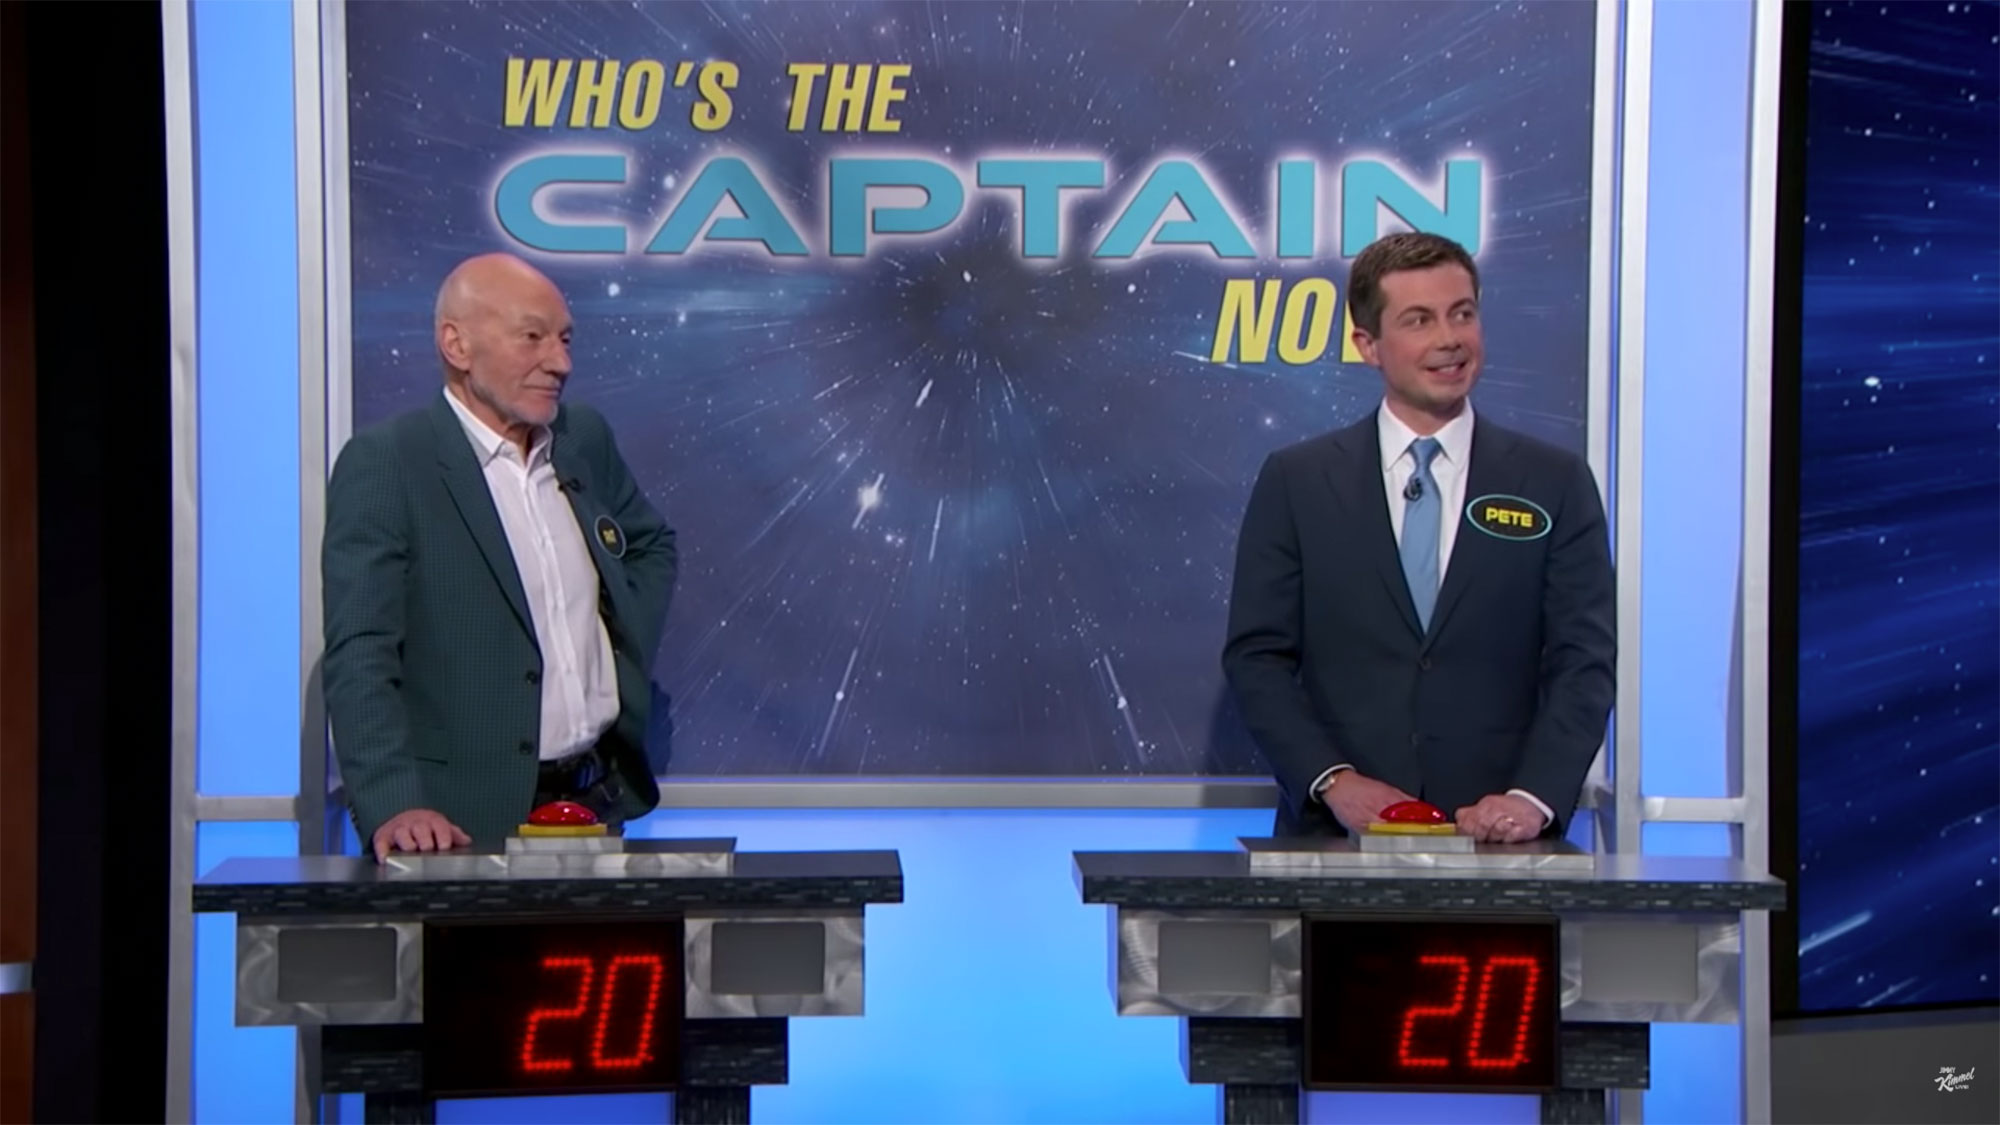 Star Trek Trivia – Sir Patrick Stewart vs Mayor Pete Buttigieg